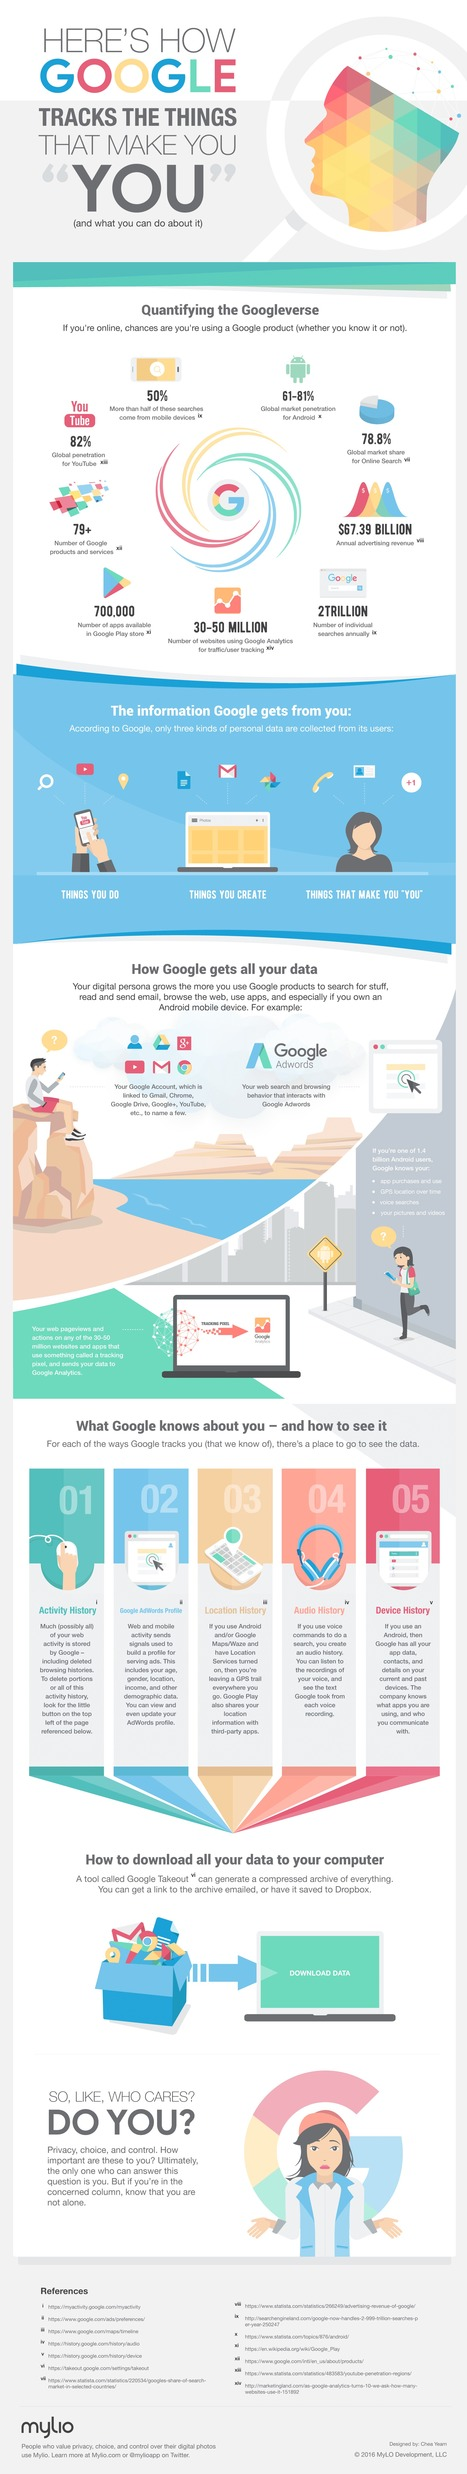 INFOGRAPHIC: Here's How Google Tracks You - and What You Can Do About It | Into the Driver's Seat | Scoop.it